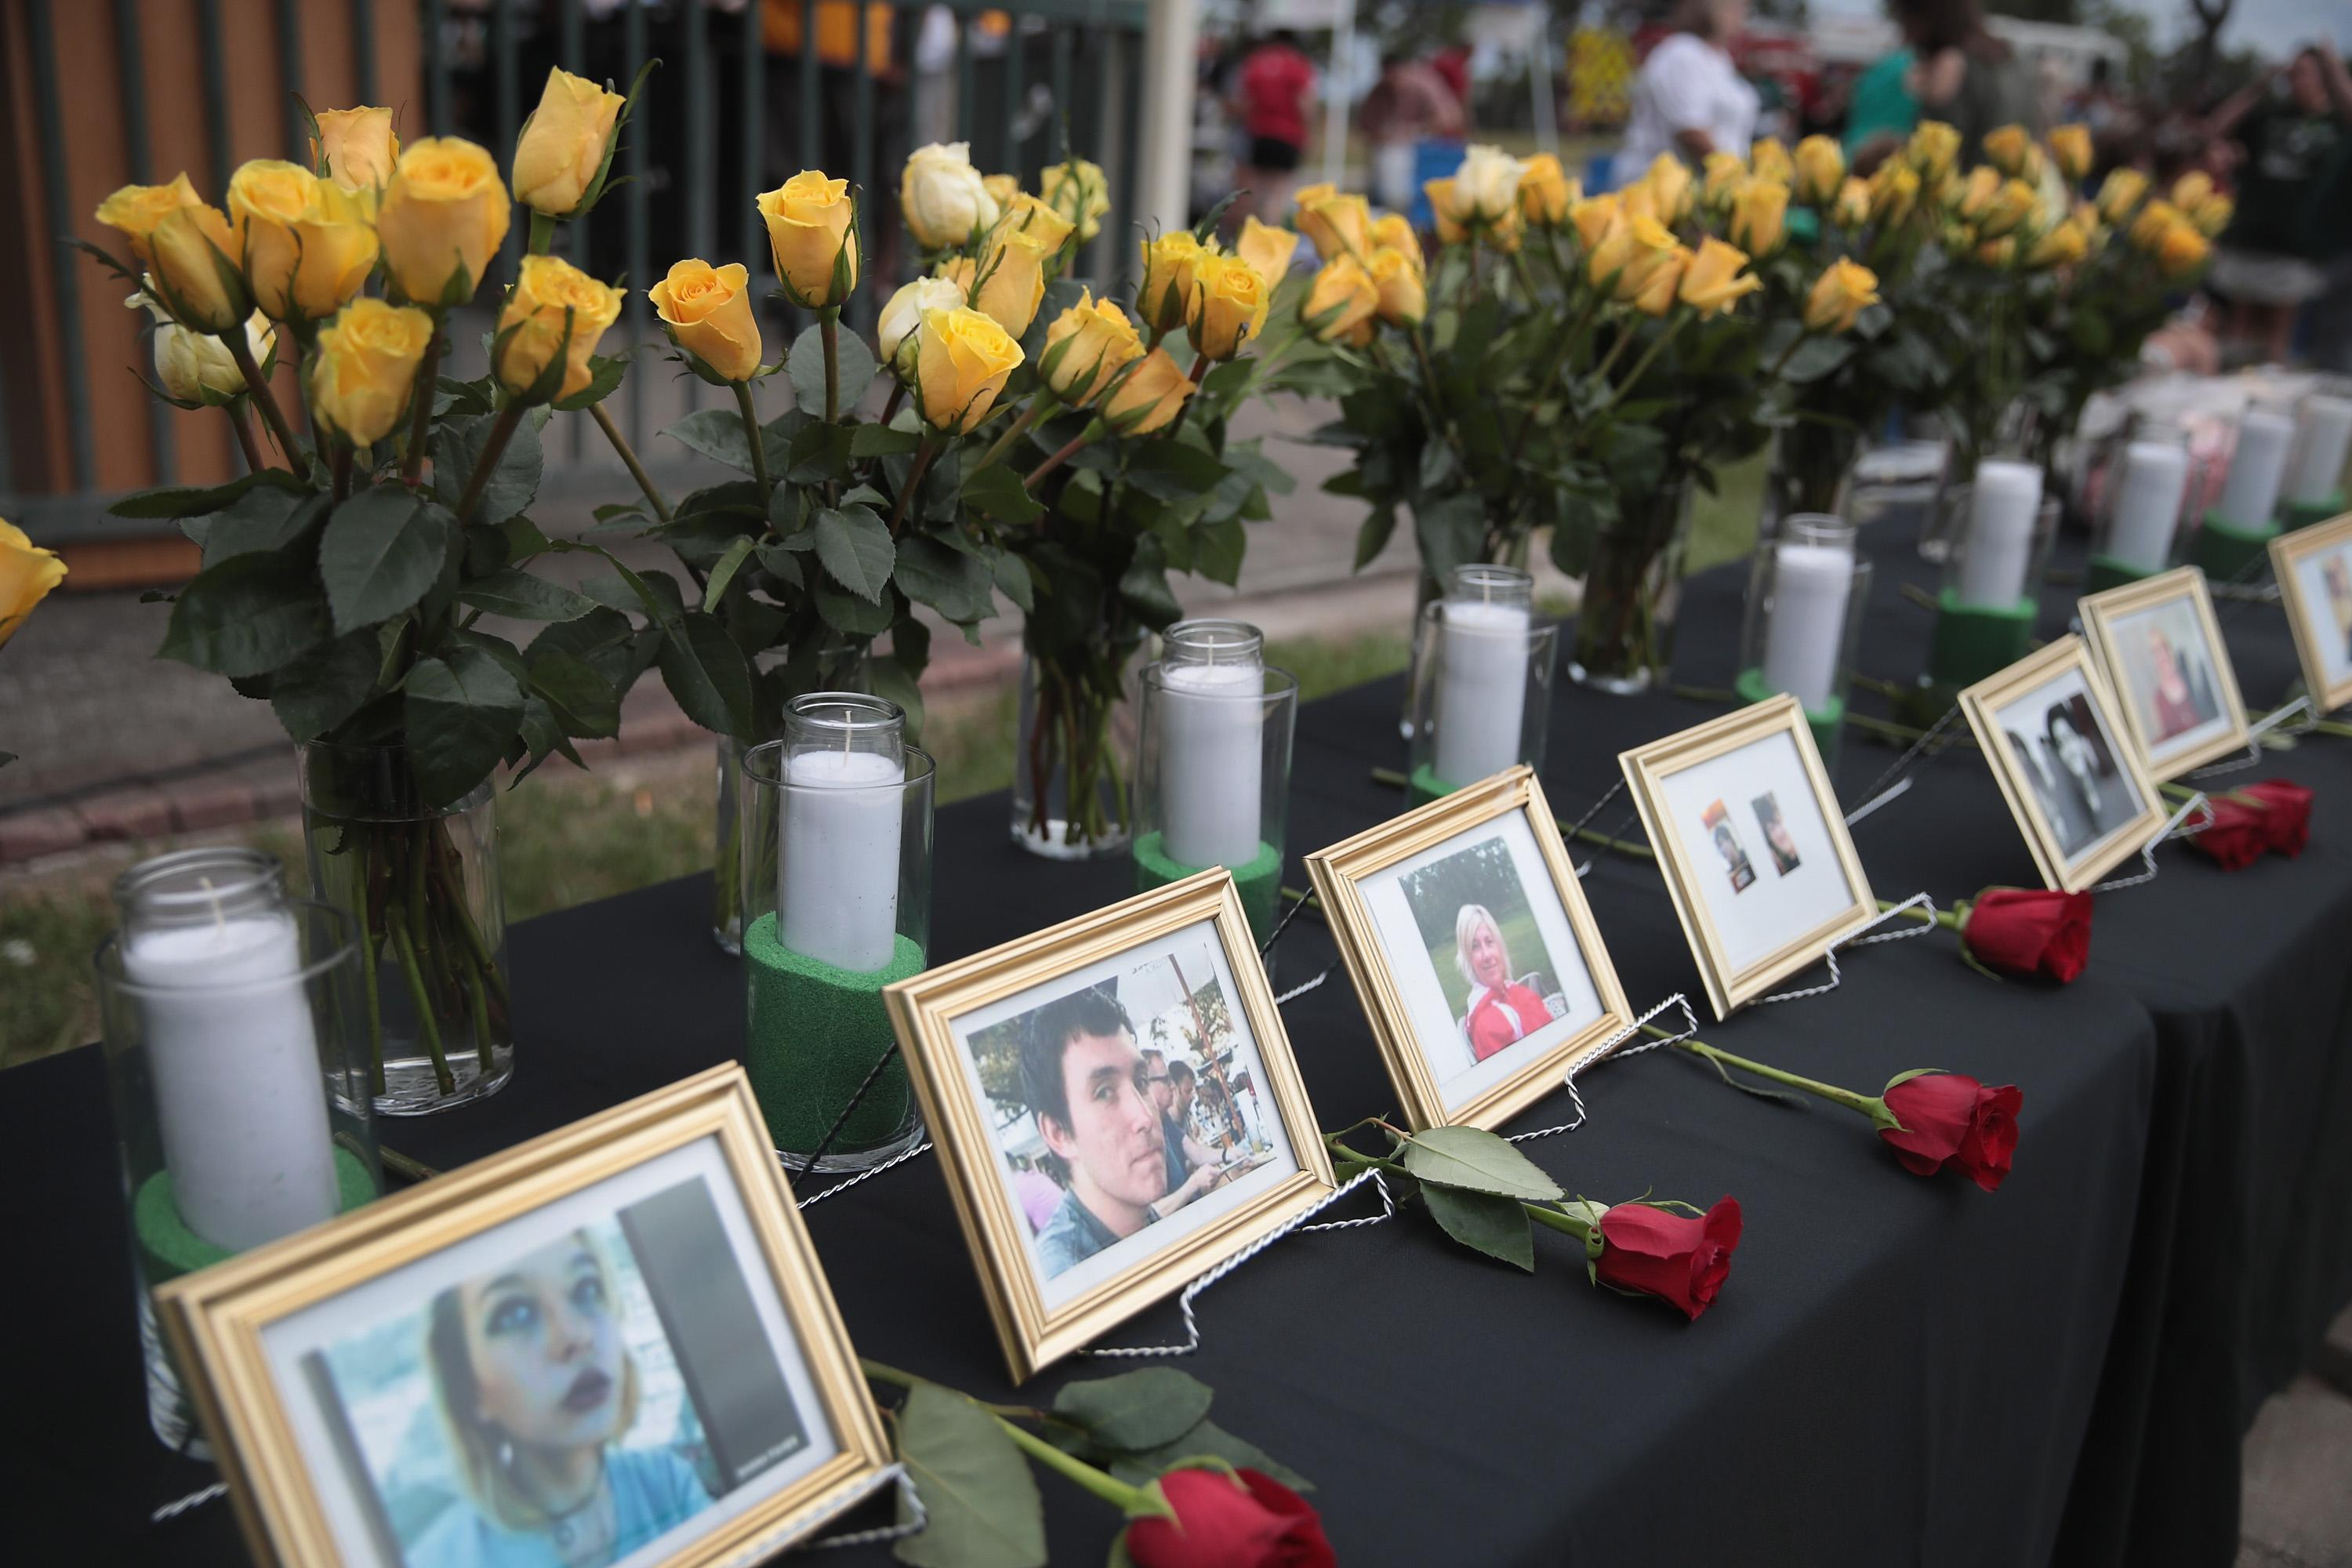 <p>Pictures of victims of the Santa Fe High School shooting are displayed during a prayer vigil at Walter Hall Park on May 20, 2018 in League City, Texas. (Photo: Scott Olson/Getty Images) </p>